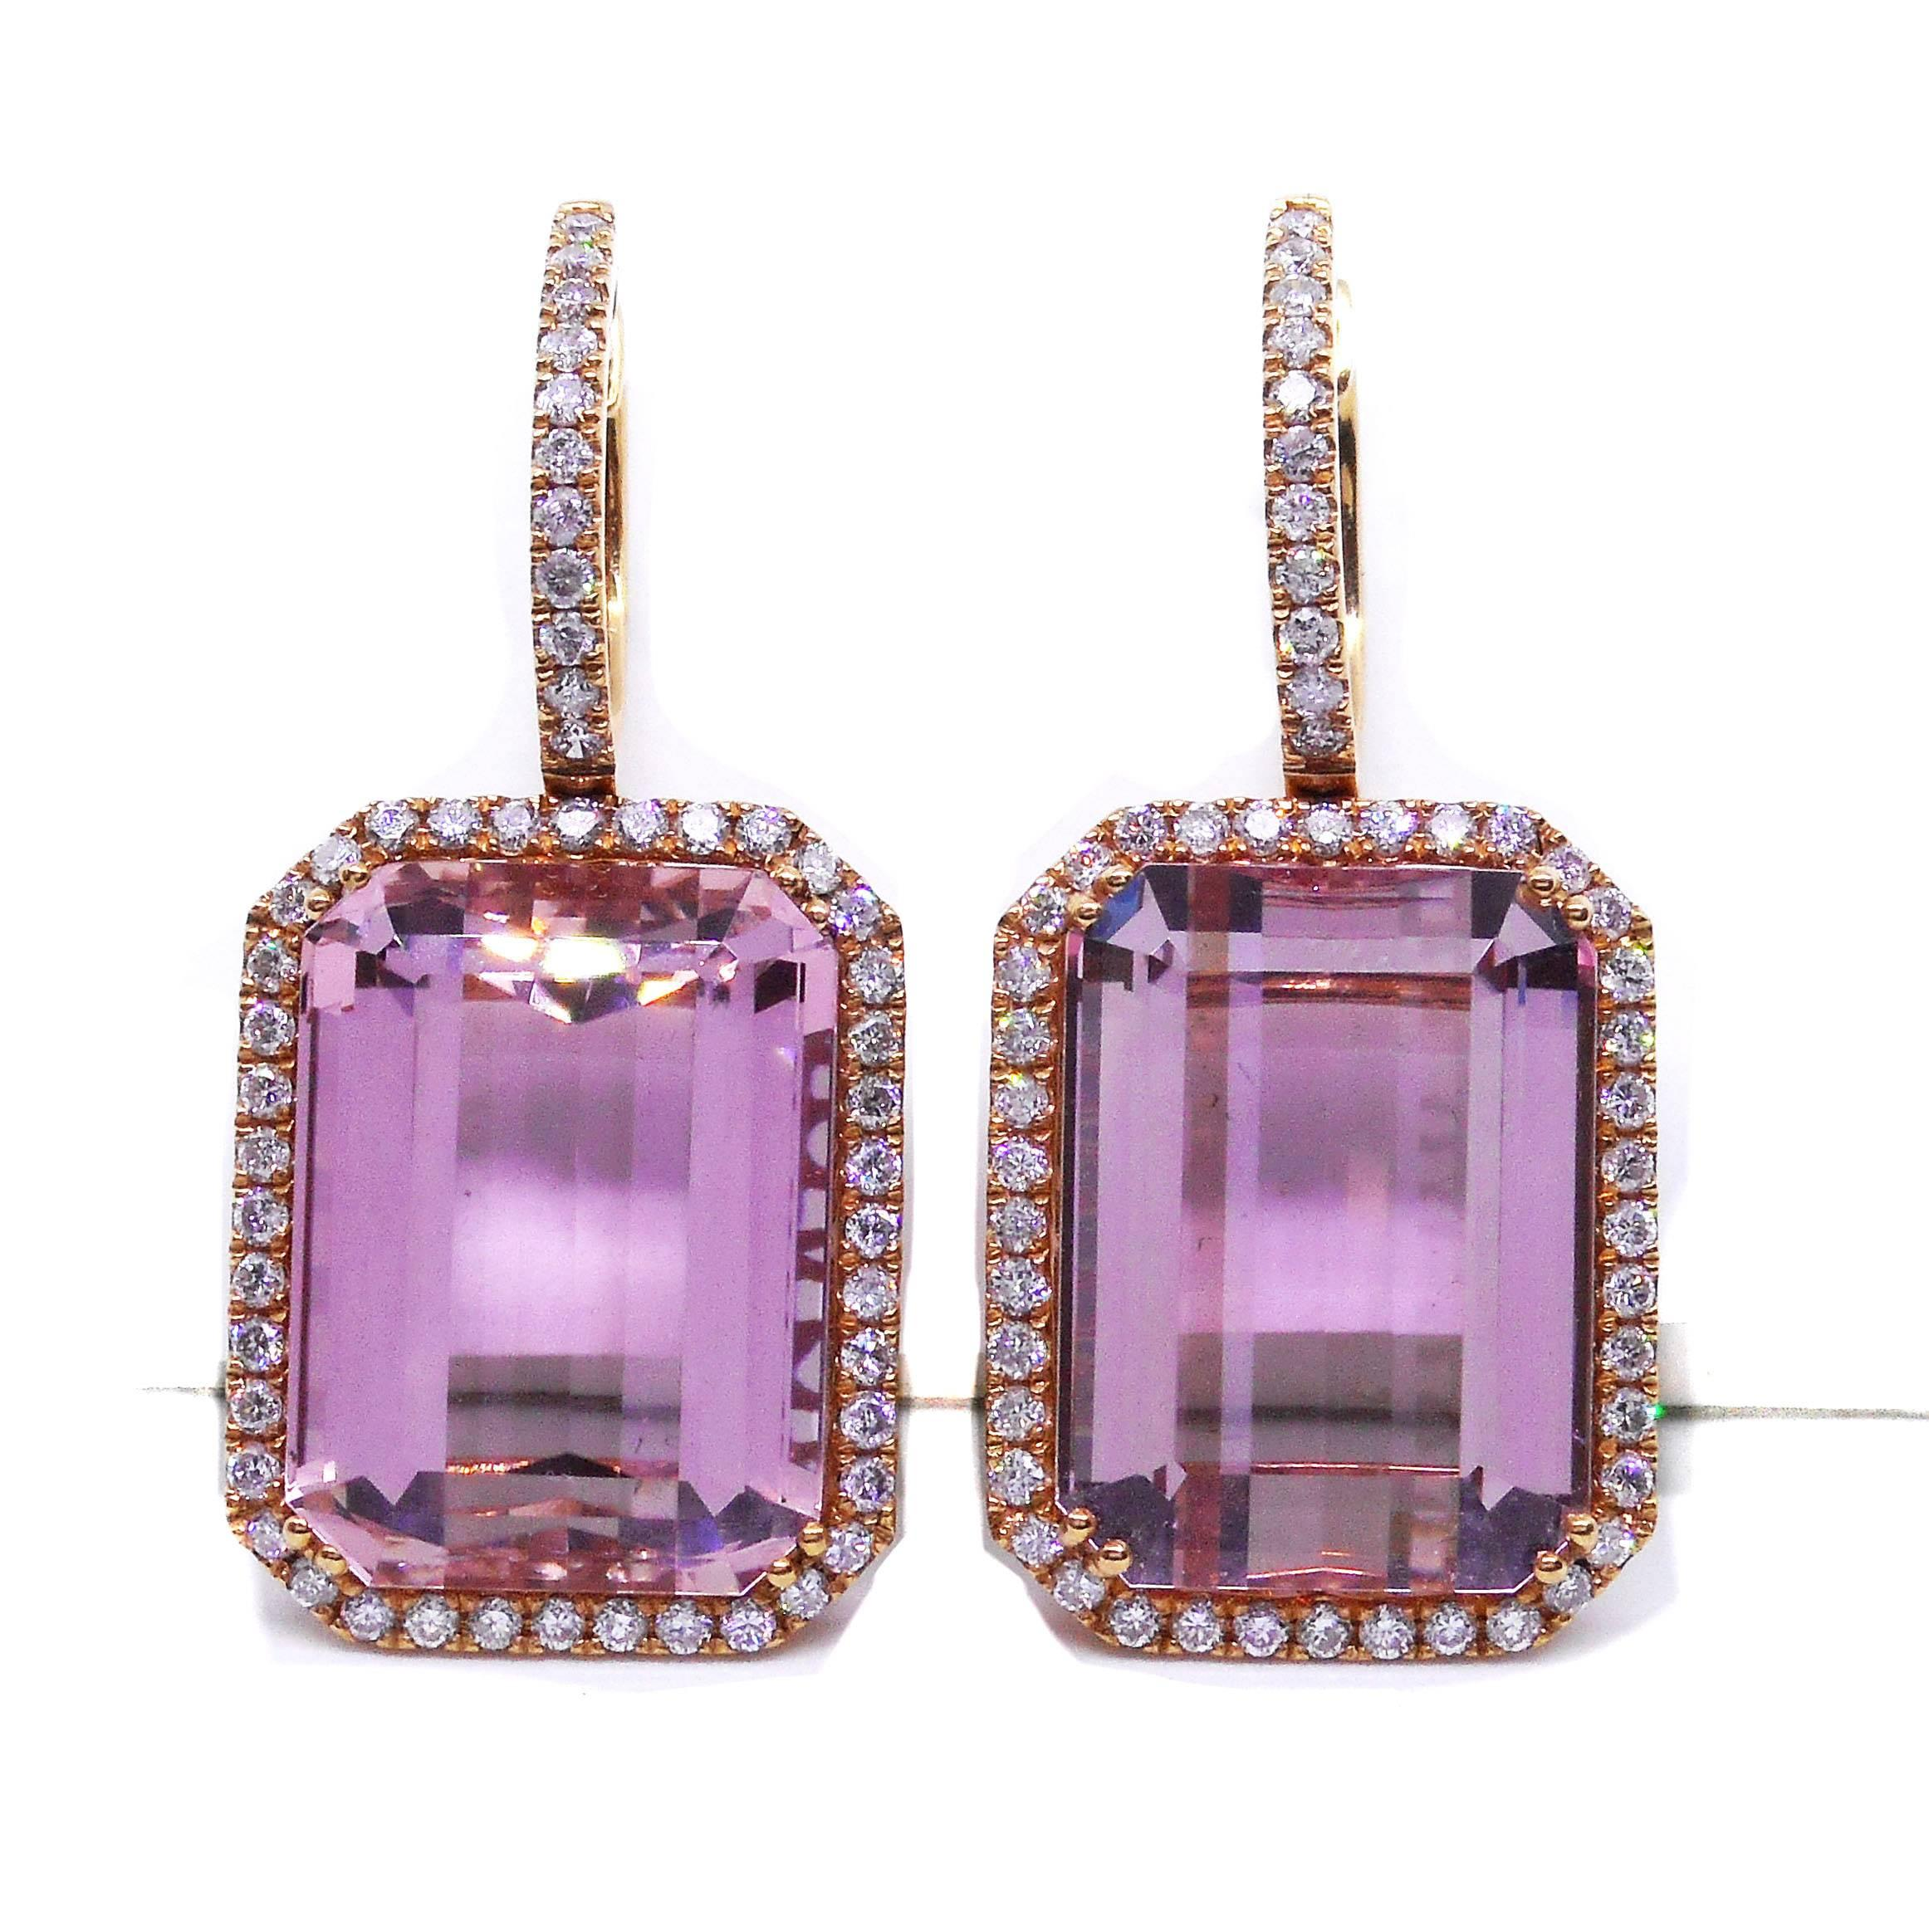 jewellery iroshini kunzite product earrings